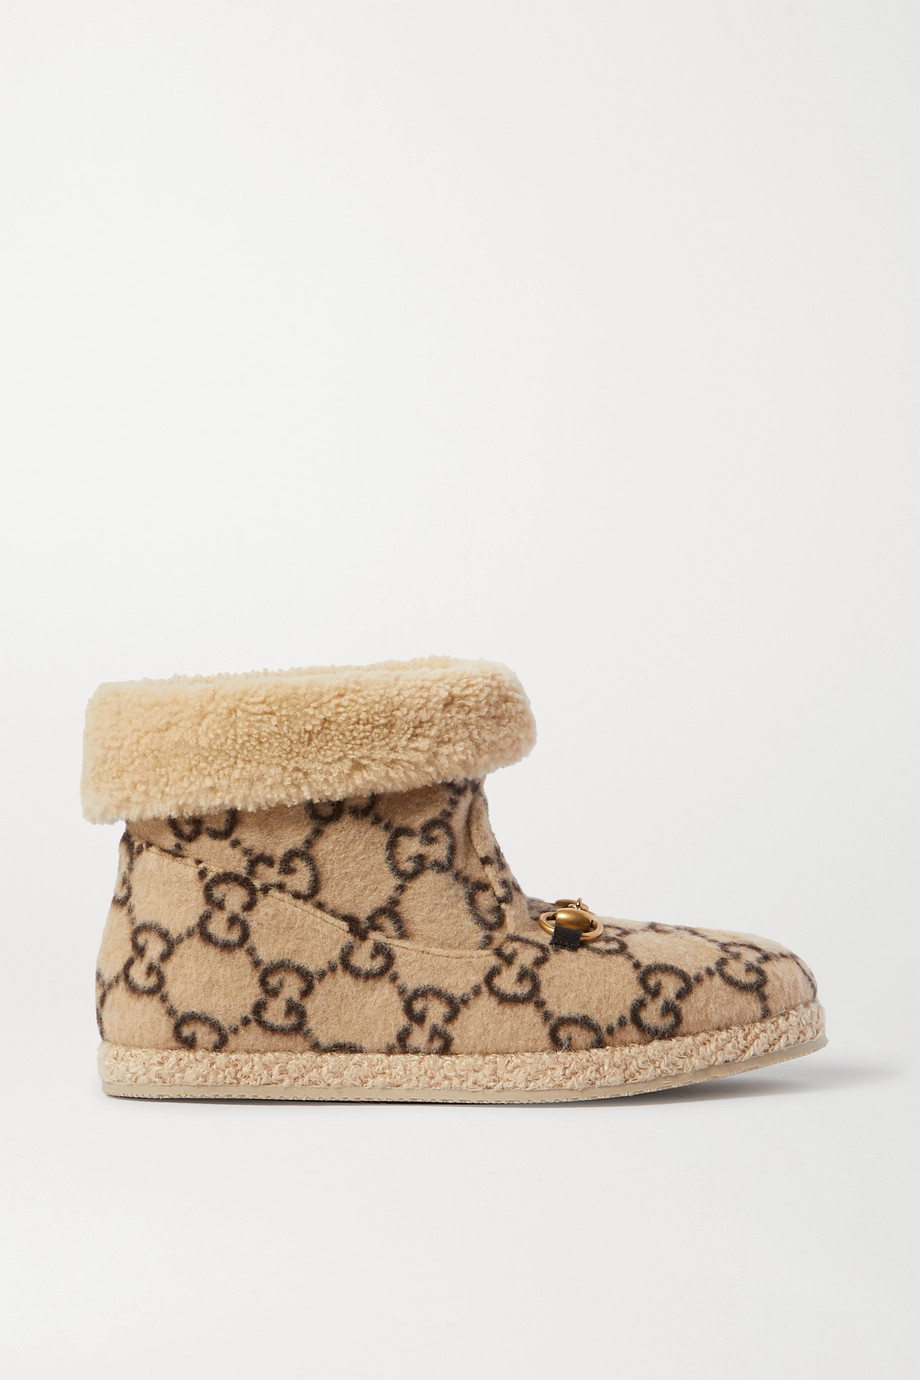 Gucci Fria horsebit-detailed logo-print wool and faux shearling ankle boots